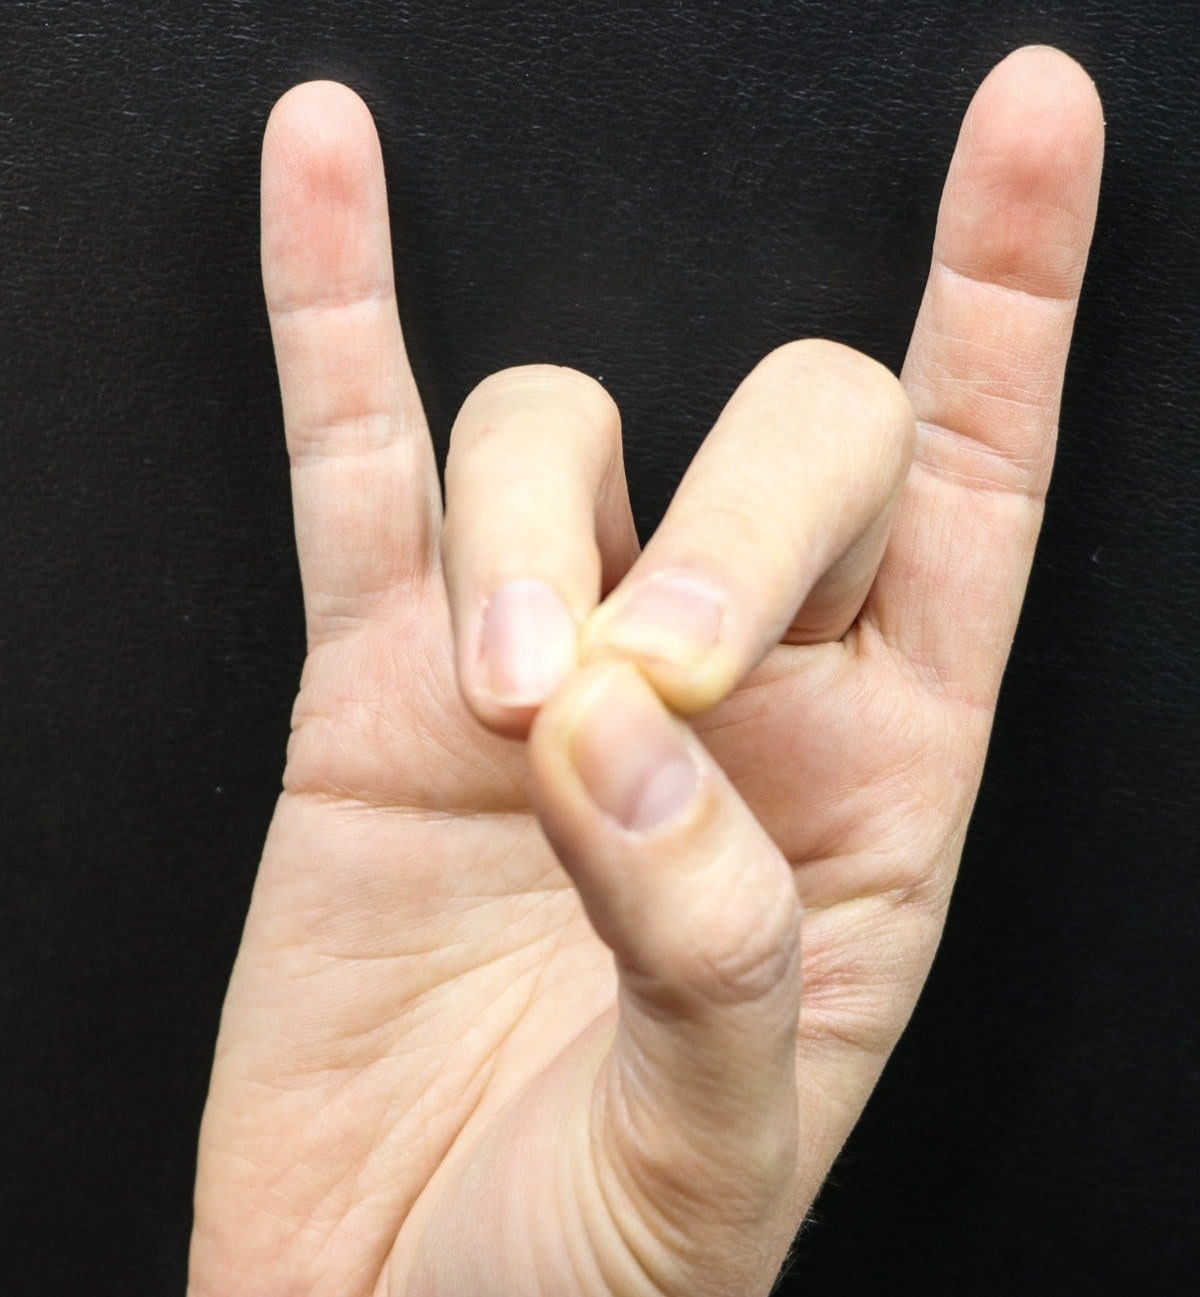 To increase mental and physical digestion, use apana mudra.